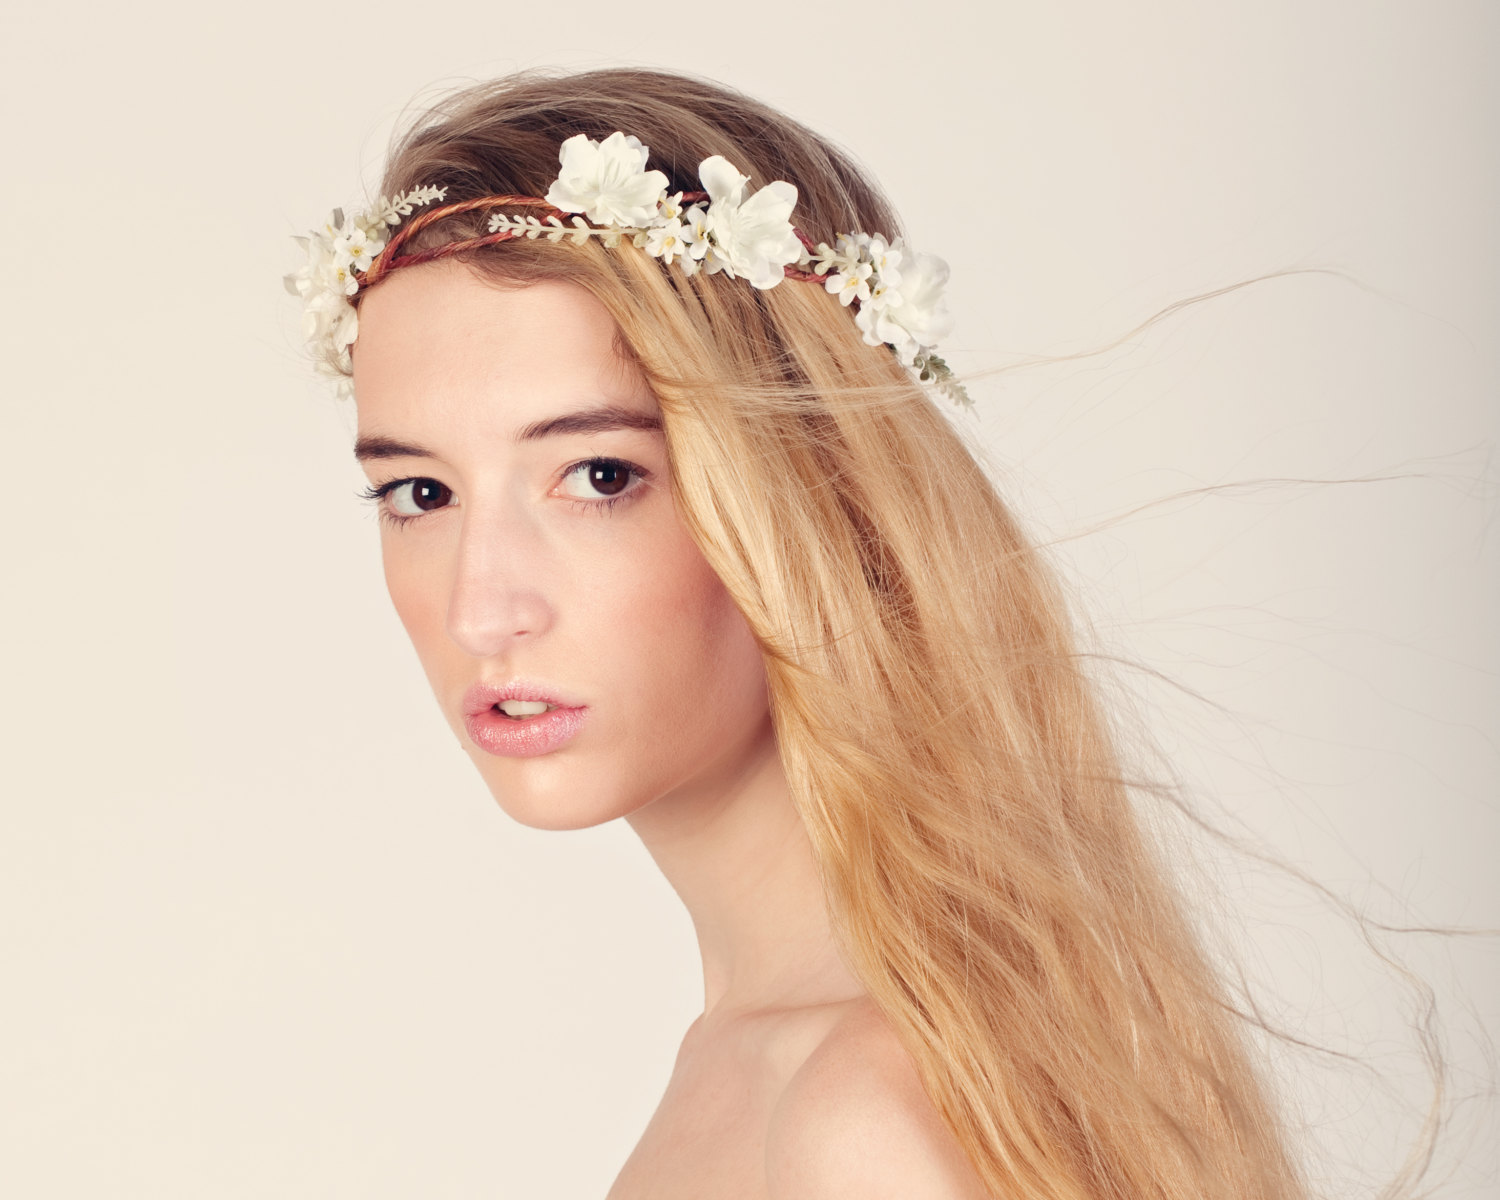 Boho bridal hair crown, flower crown, woodland wedding head piece, white flower crown, bridal headpiece